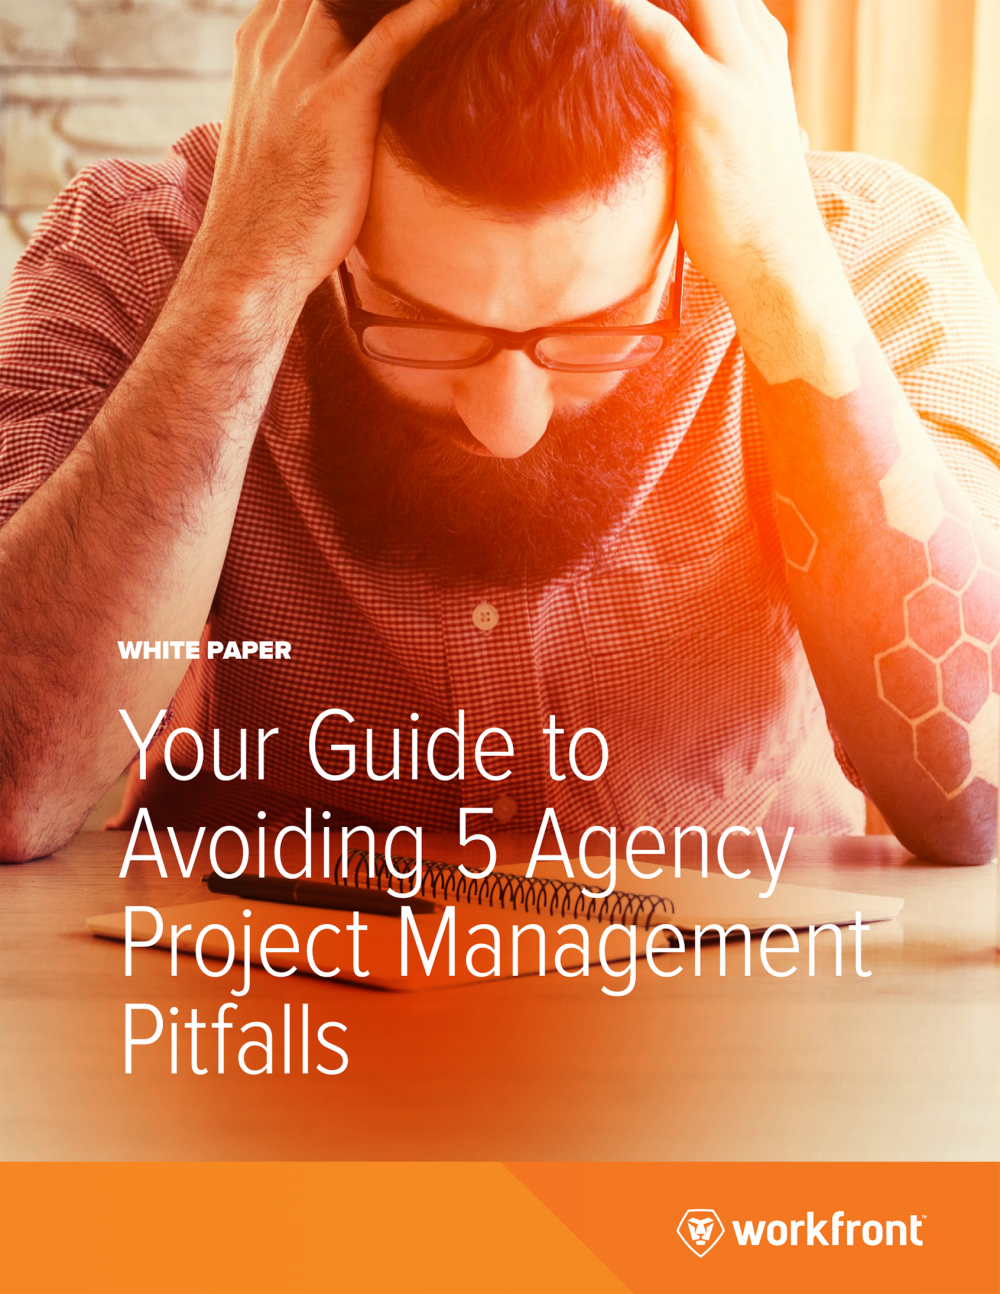 Your Guide to Avoiding 5 Agency Project Management Pitfalls